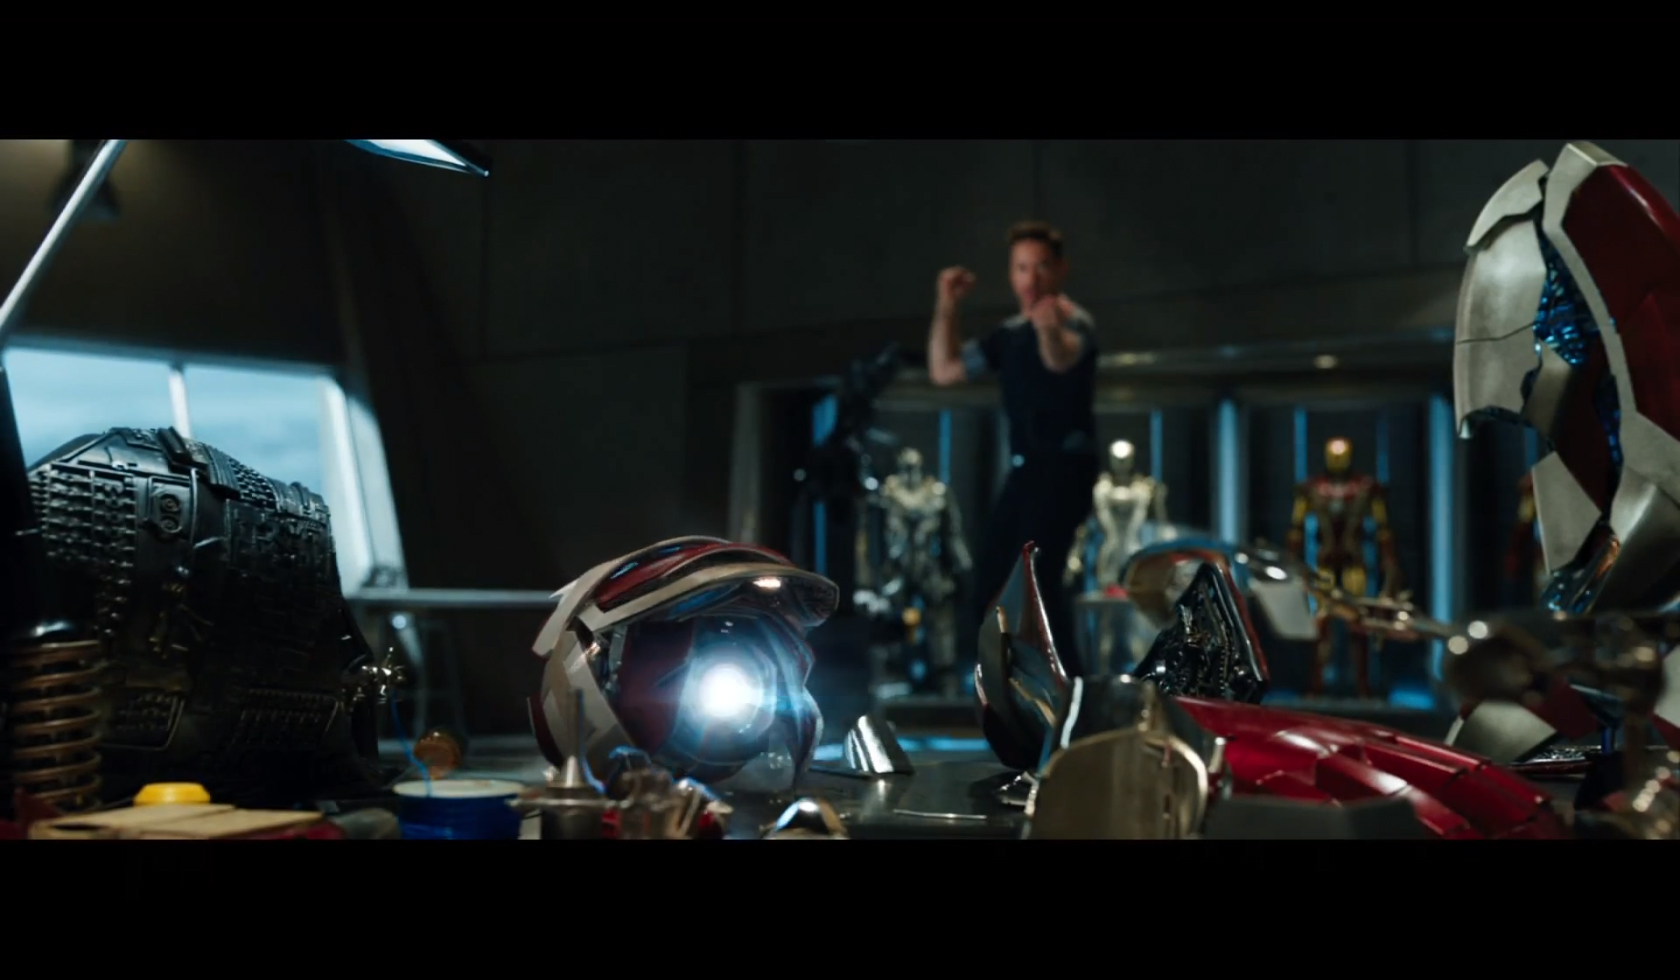 Iron Man 3 (Trailer #1) Review | Tim's Film Reviews